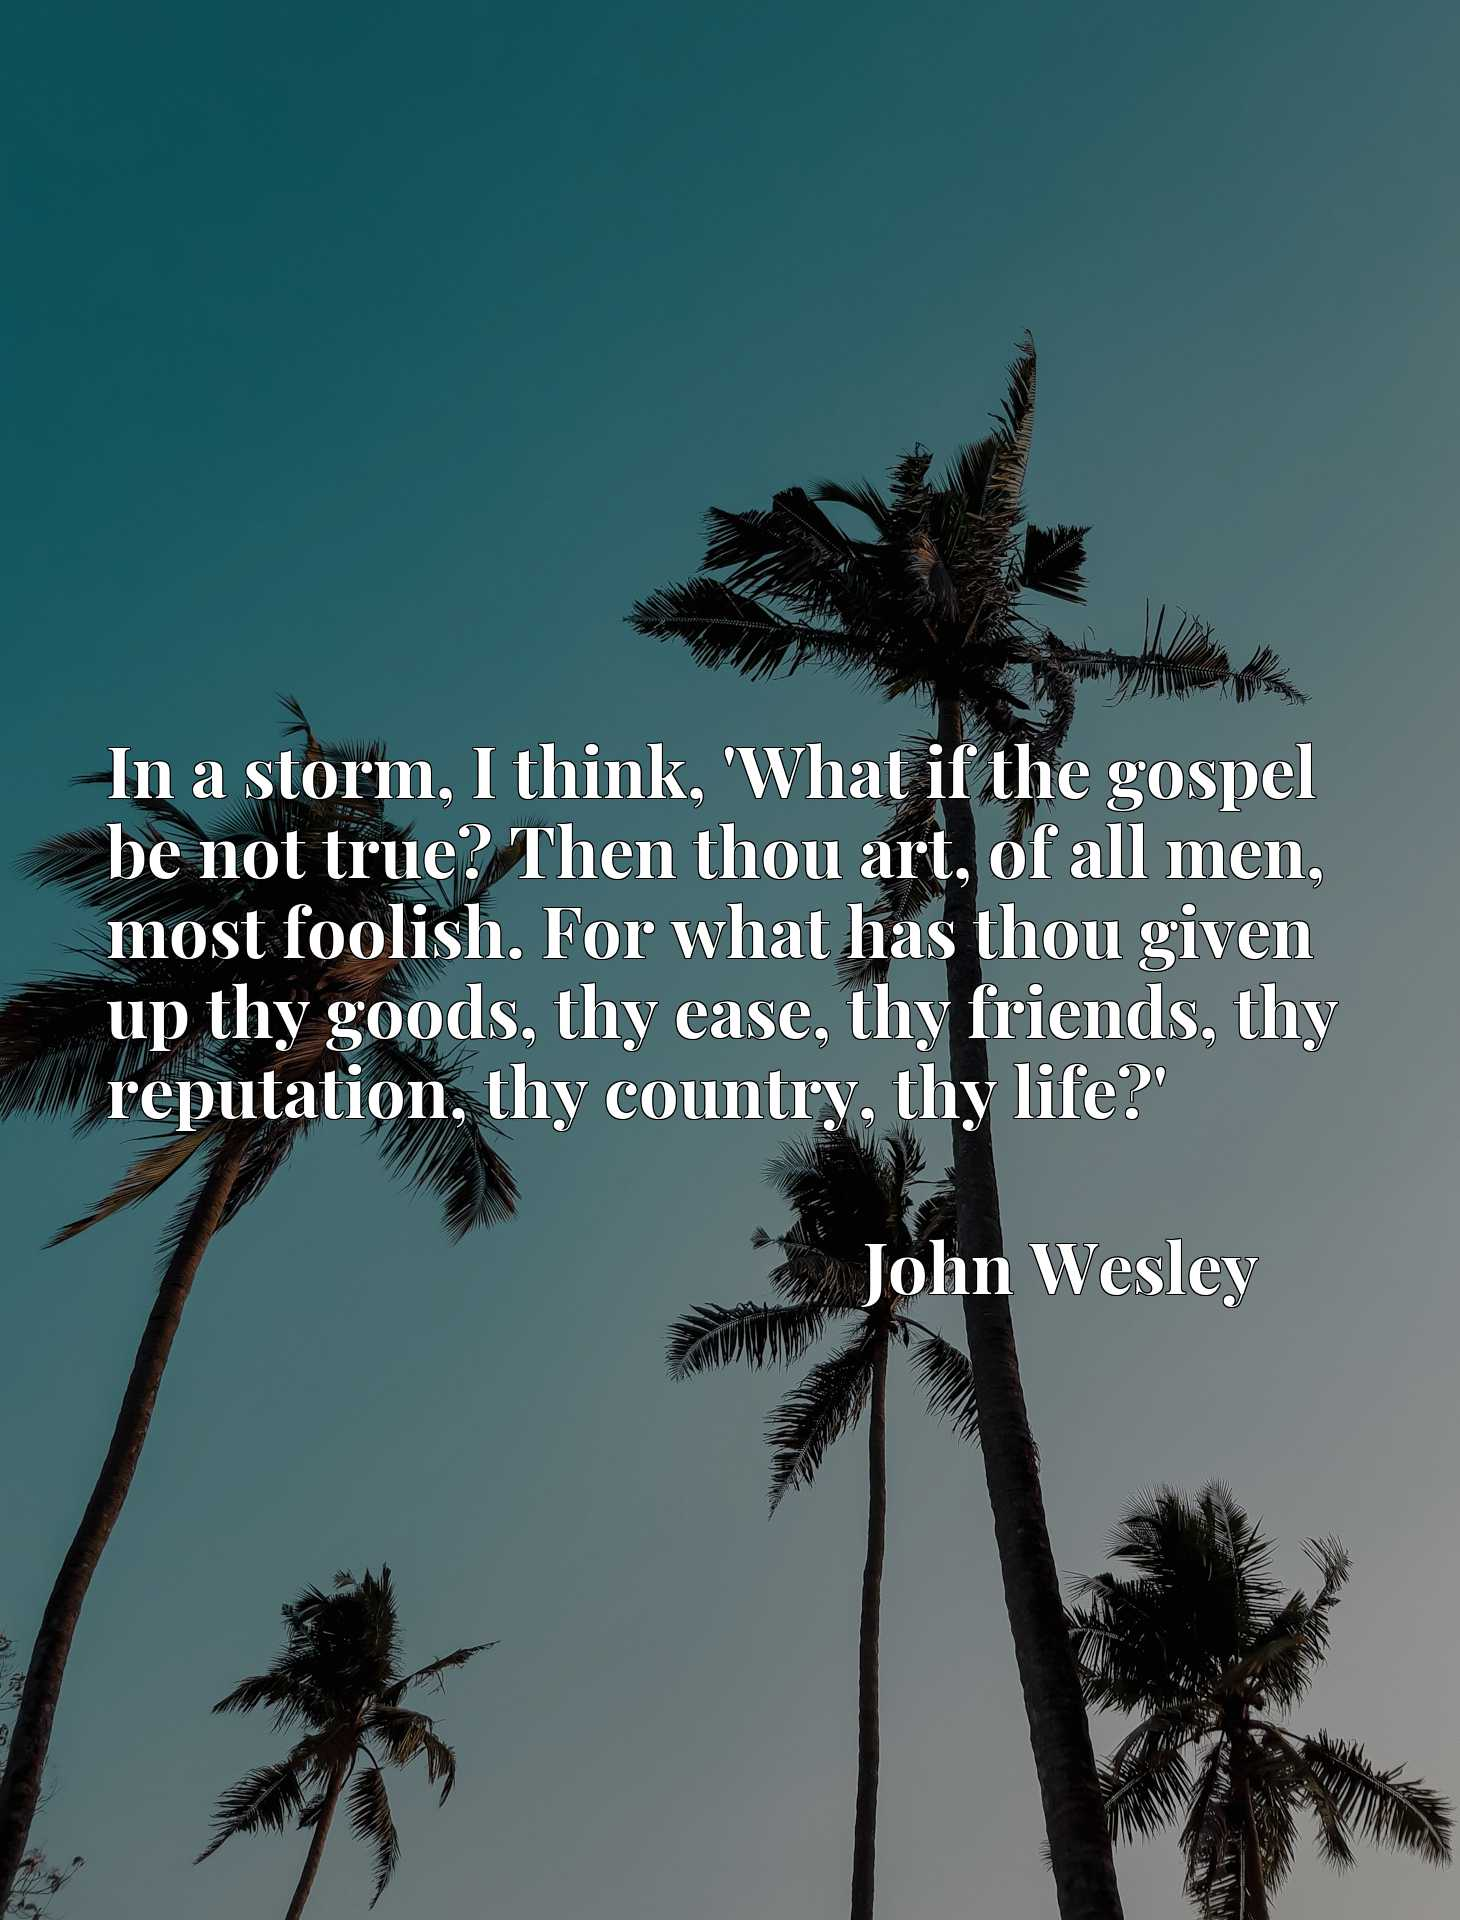 In a storm, I think, 'What if the gospel be not true? Then thou art, of all men, most foolish. For what has thou given up thy goods, thy ease, thy friends, thy reputation, thy country, thy life?'